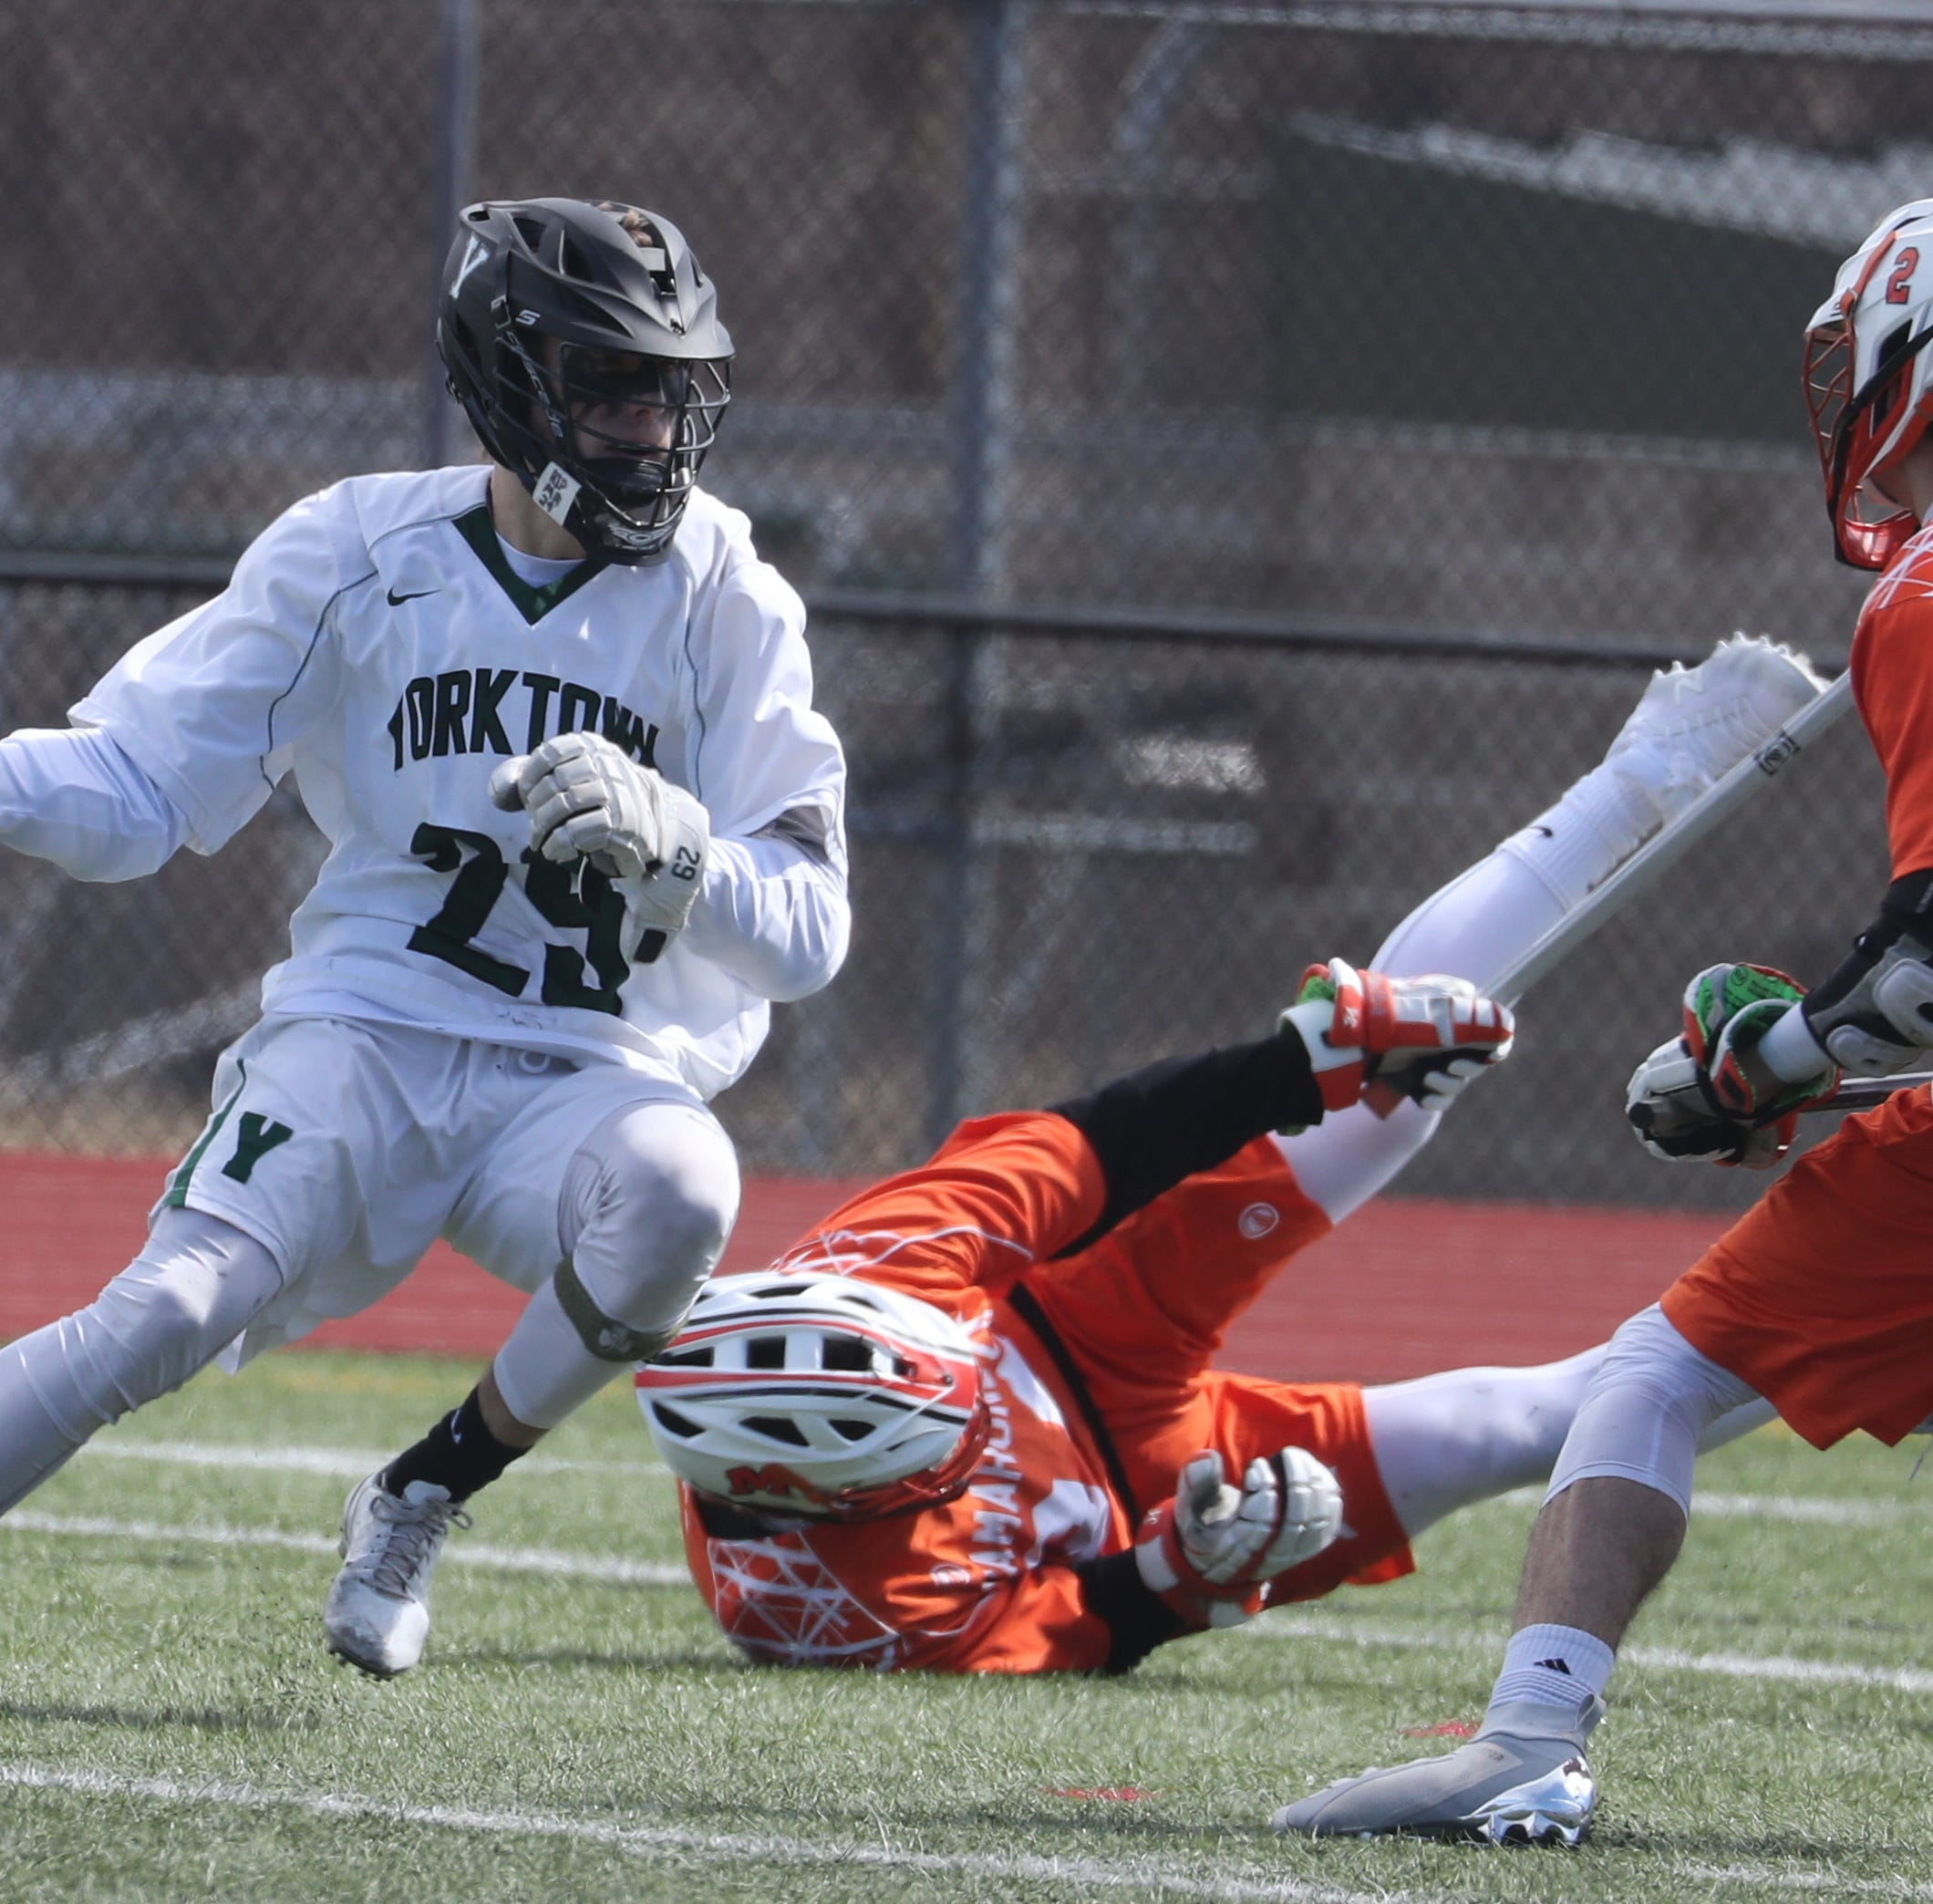 Boys lacrosse rankings: Yorktown moves back on top despite first setback